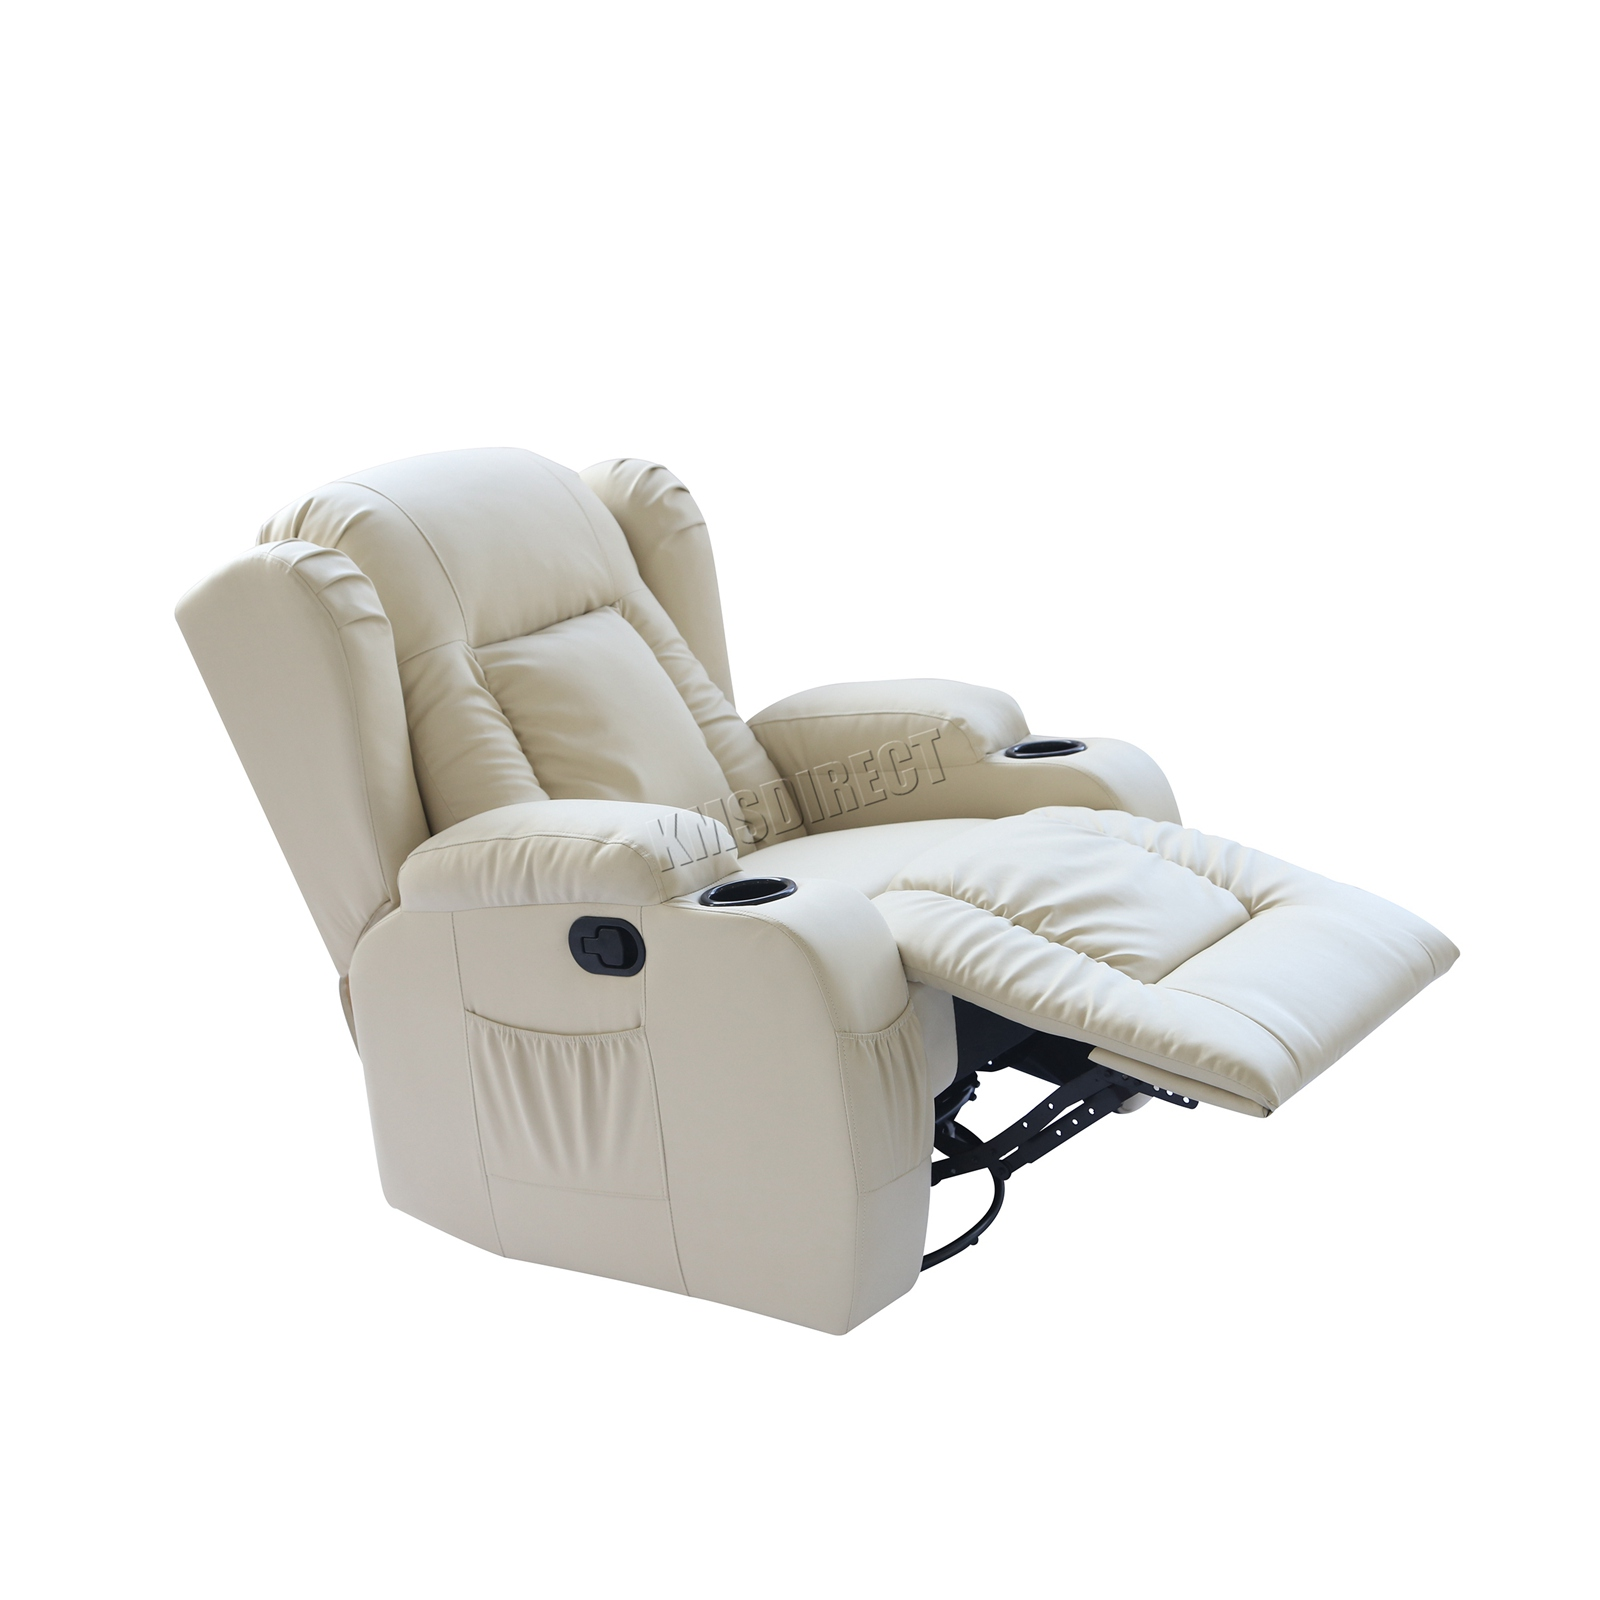 WESTWOOD-Leather-Recliner-Armchair-Swivel-Heated-chair-Massage-Gaming-Chair thumbnail 41